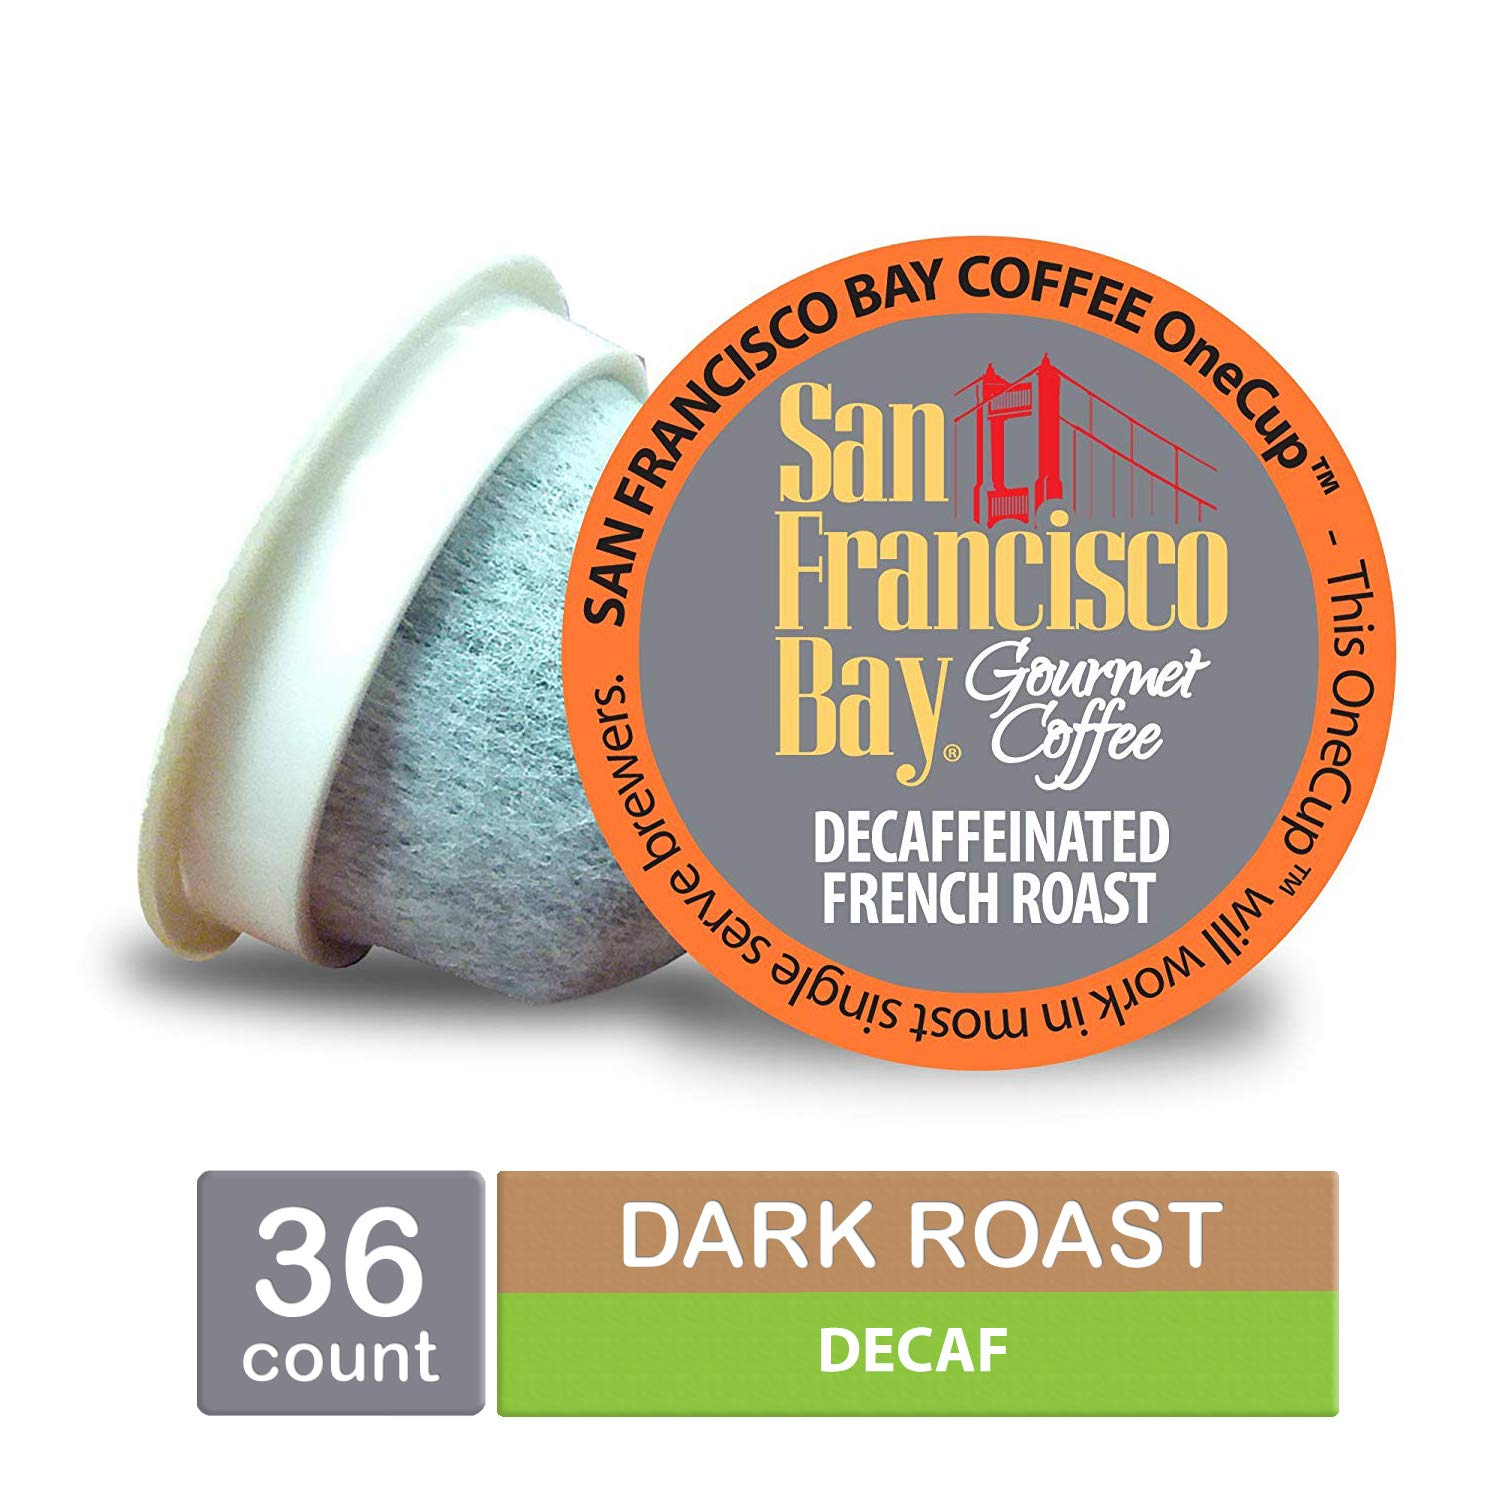 San Francisco Bay OneCup, DECAF French Roast, Single Serve Coffee K-Cup Pods (36 Count) Keurig Compatible, Swiss Water Process- Decaffeinated